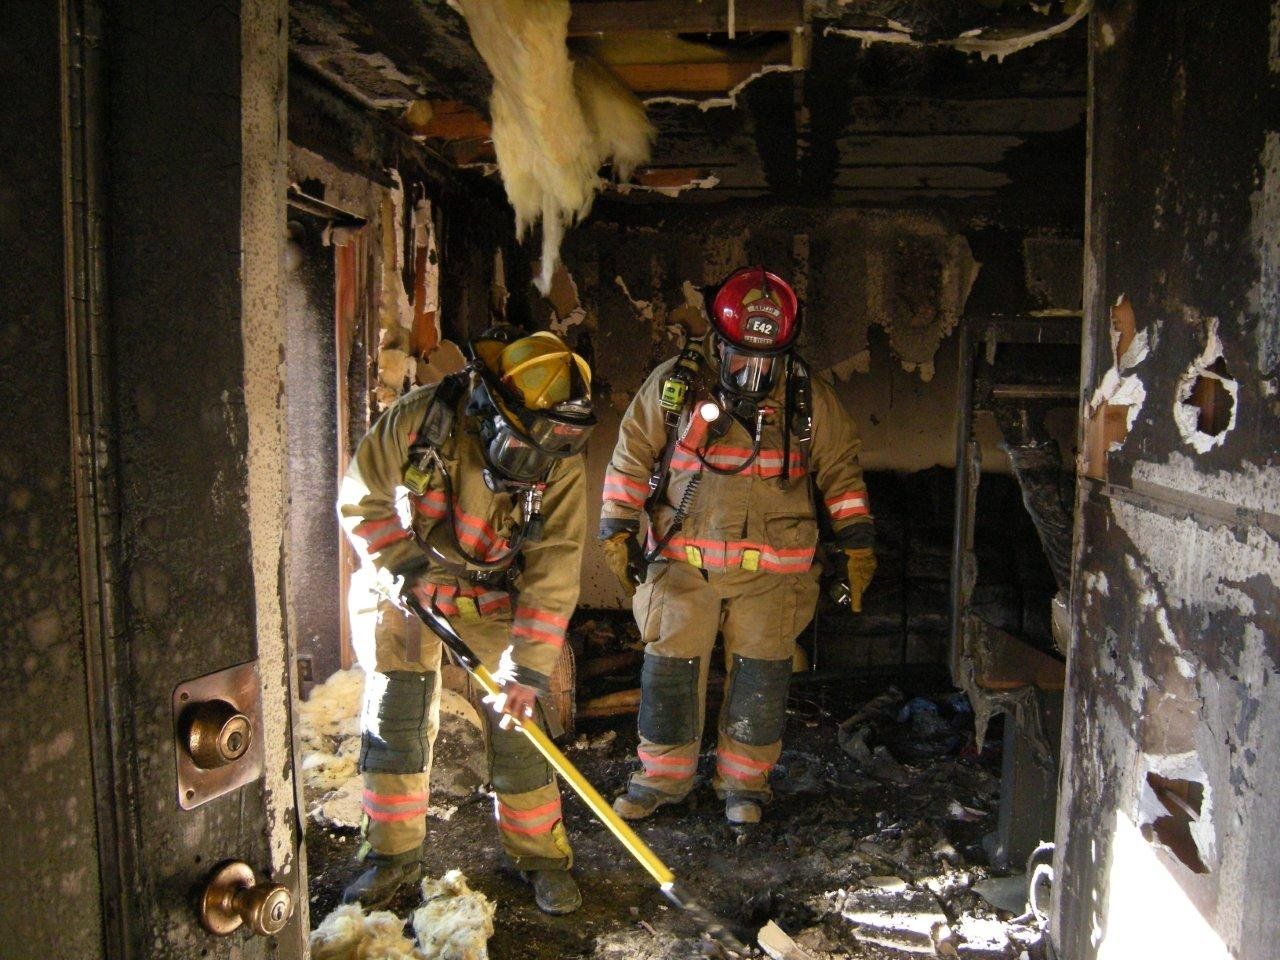 Fire destroyed the living room (Courtesy of Las Vegas Fire & Rescue)